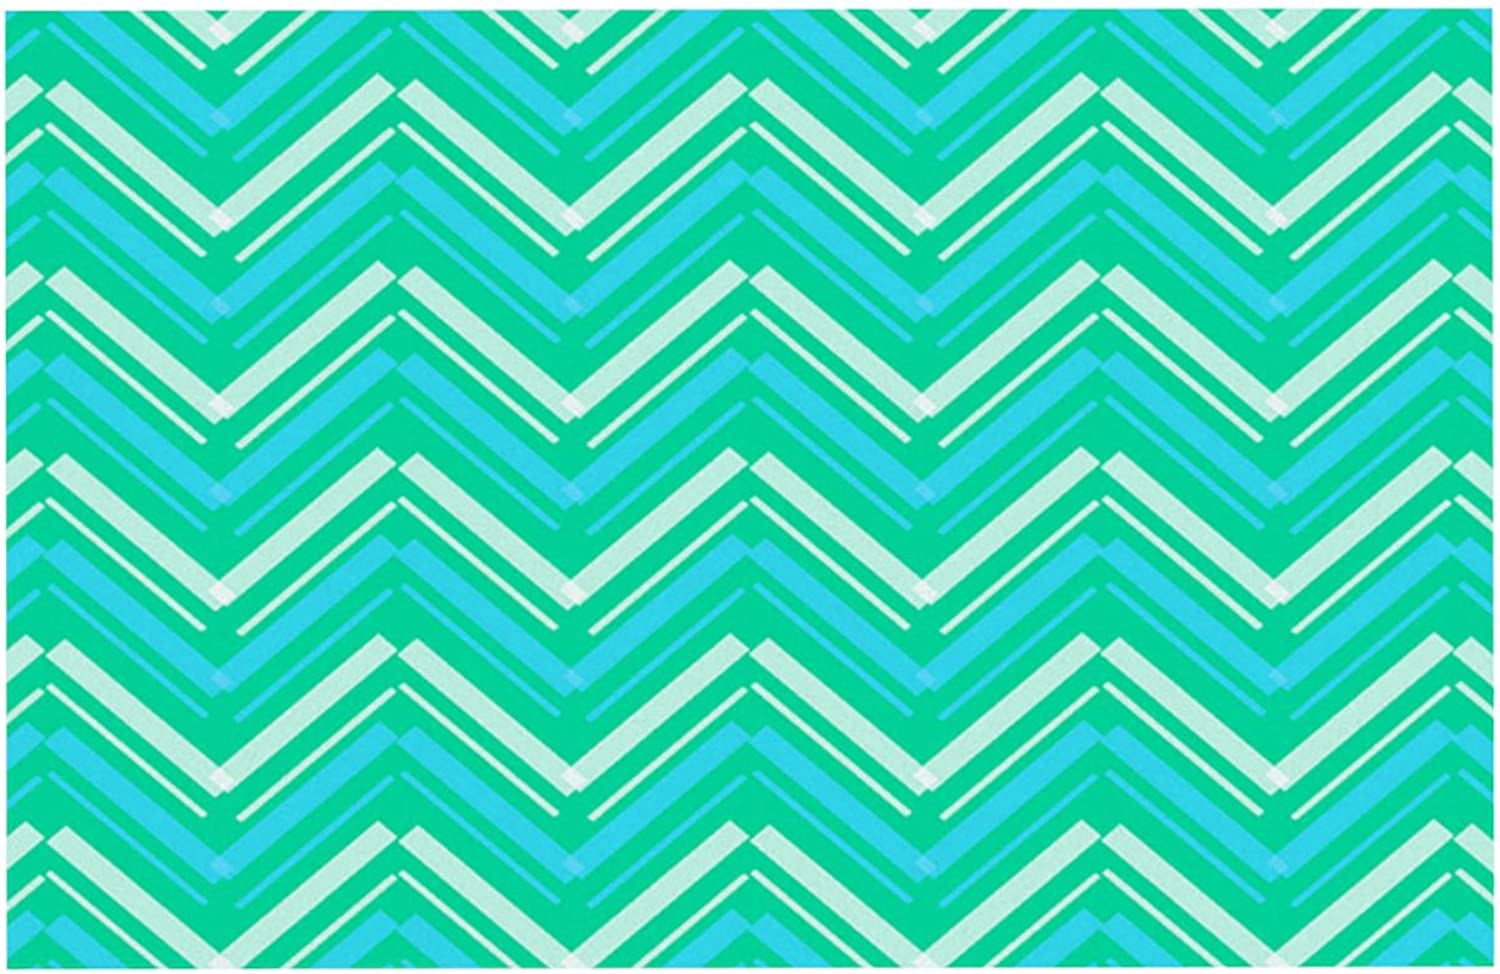 Kess InHouse CarolLynn Tice Symetrical  Teal Turquoise Pet Bowl Placemat for Dog and Cat Feeding Mat, 24 by 15Inch